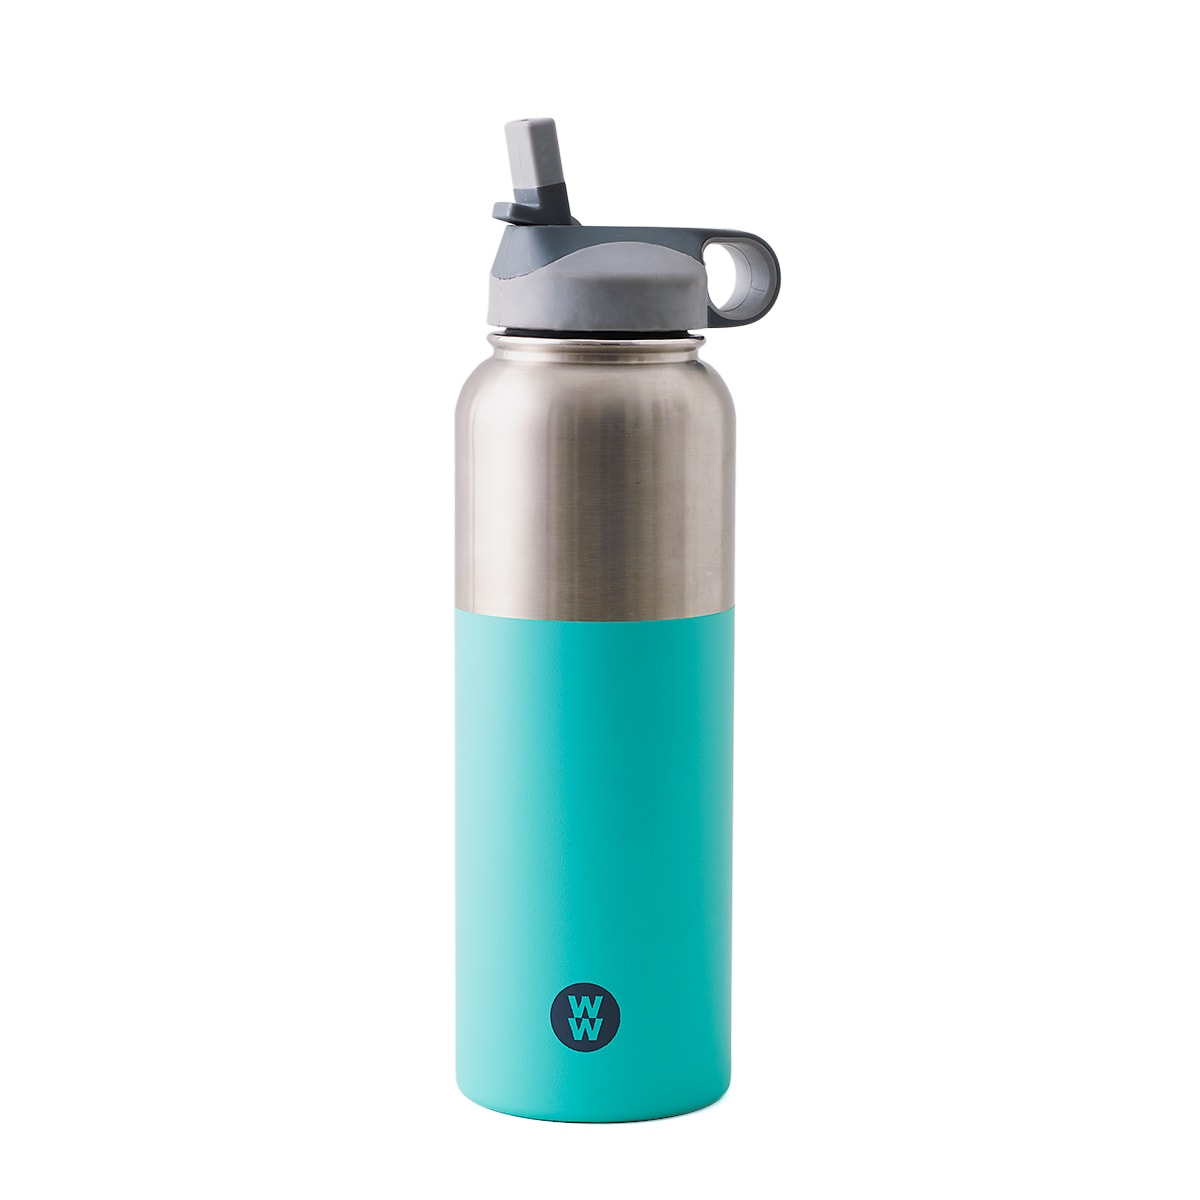 WW 38.5oz  BPA-free plastic green and silver water bottle, , copper core lining Hydration Bottle, Keeps drinks hot for up to 8 hours, keeps drinks cold for up to a full day, vacuum sealed, hand wash only